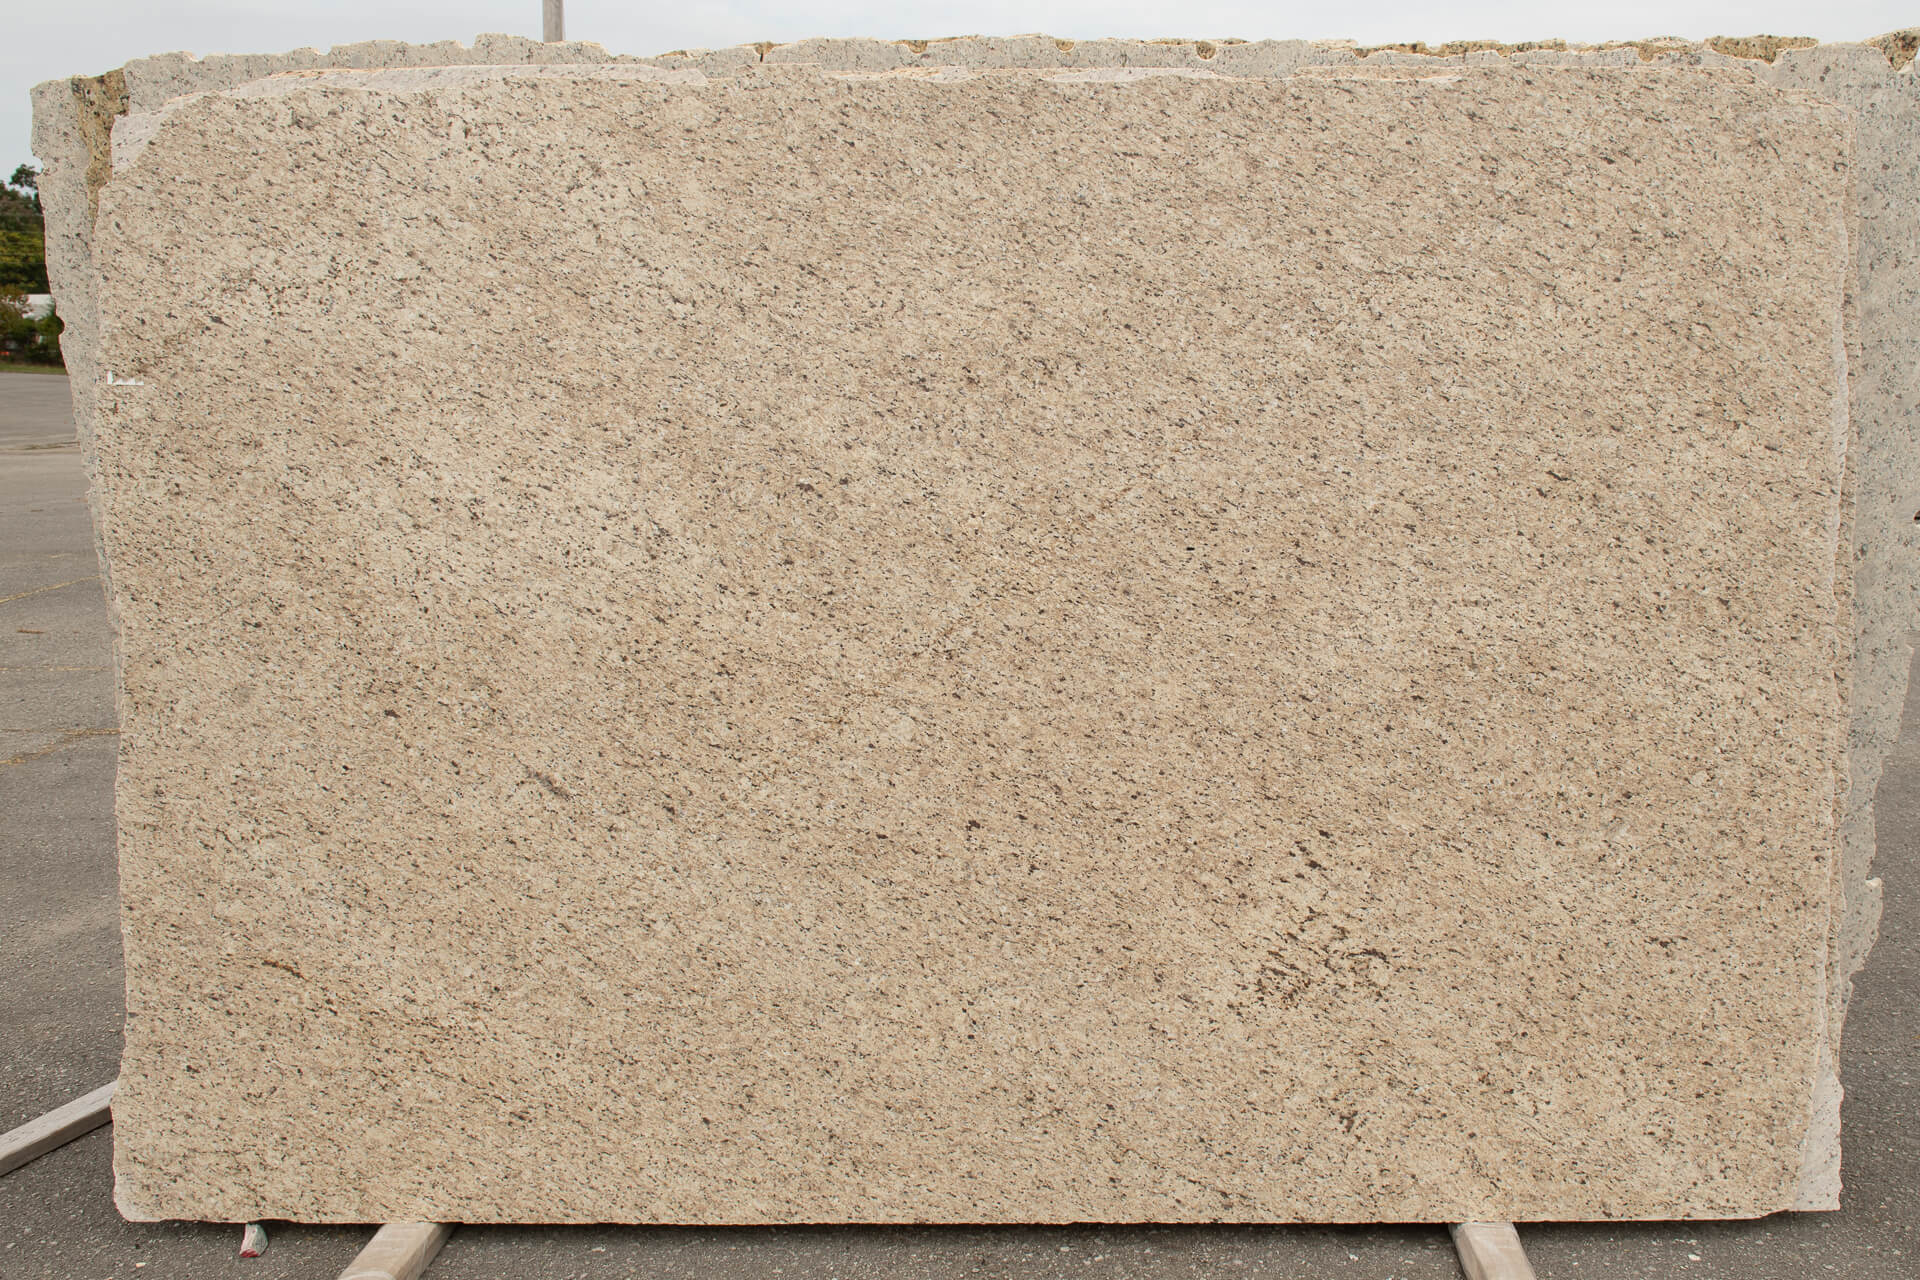 giallo ornamental 2 1 countertops for Crossville and Cookeville TN